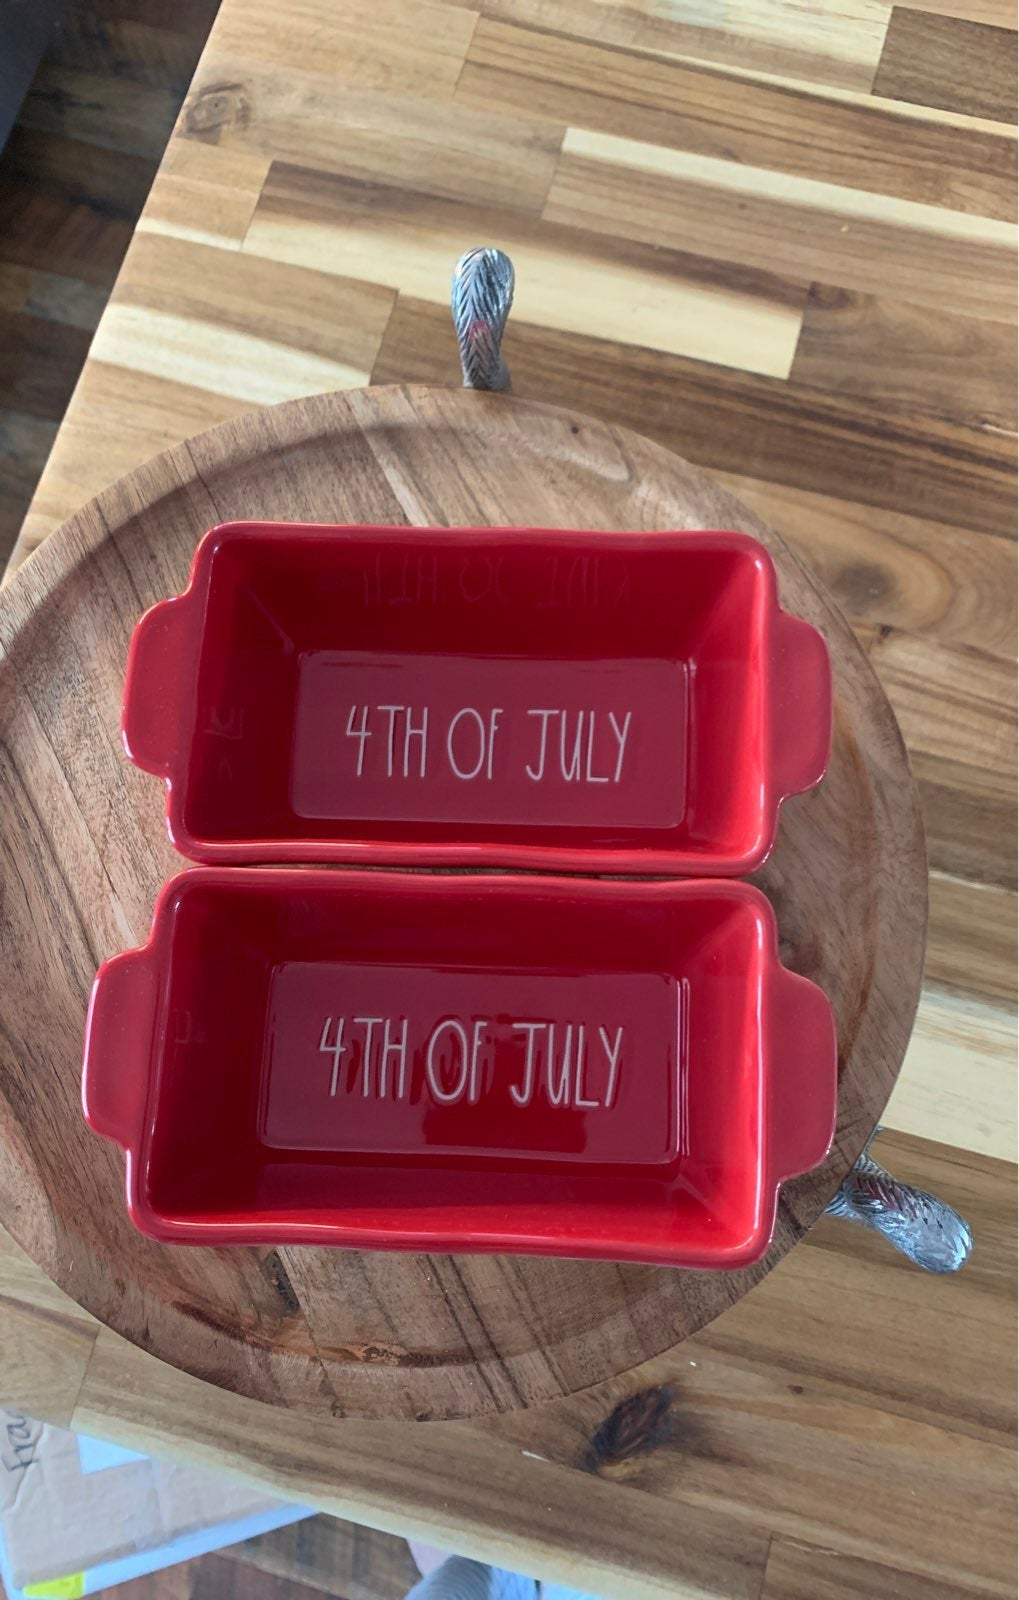 Rae Dunn 4th of july mini loaf pans